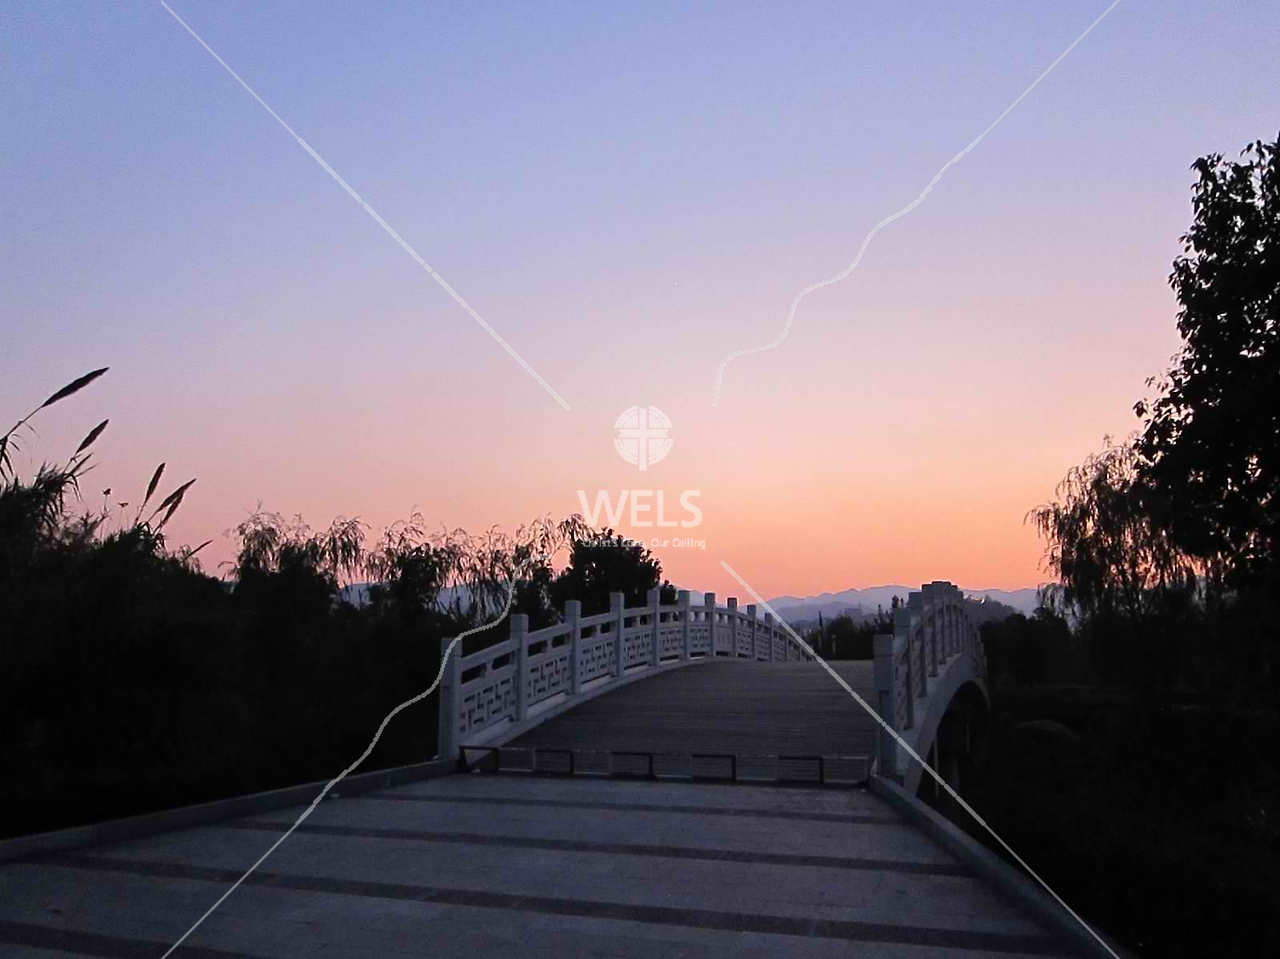 Sunset bridge in Wenling China by kstellick